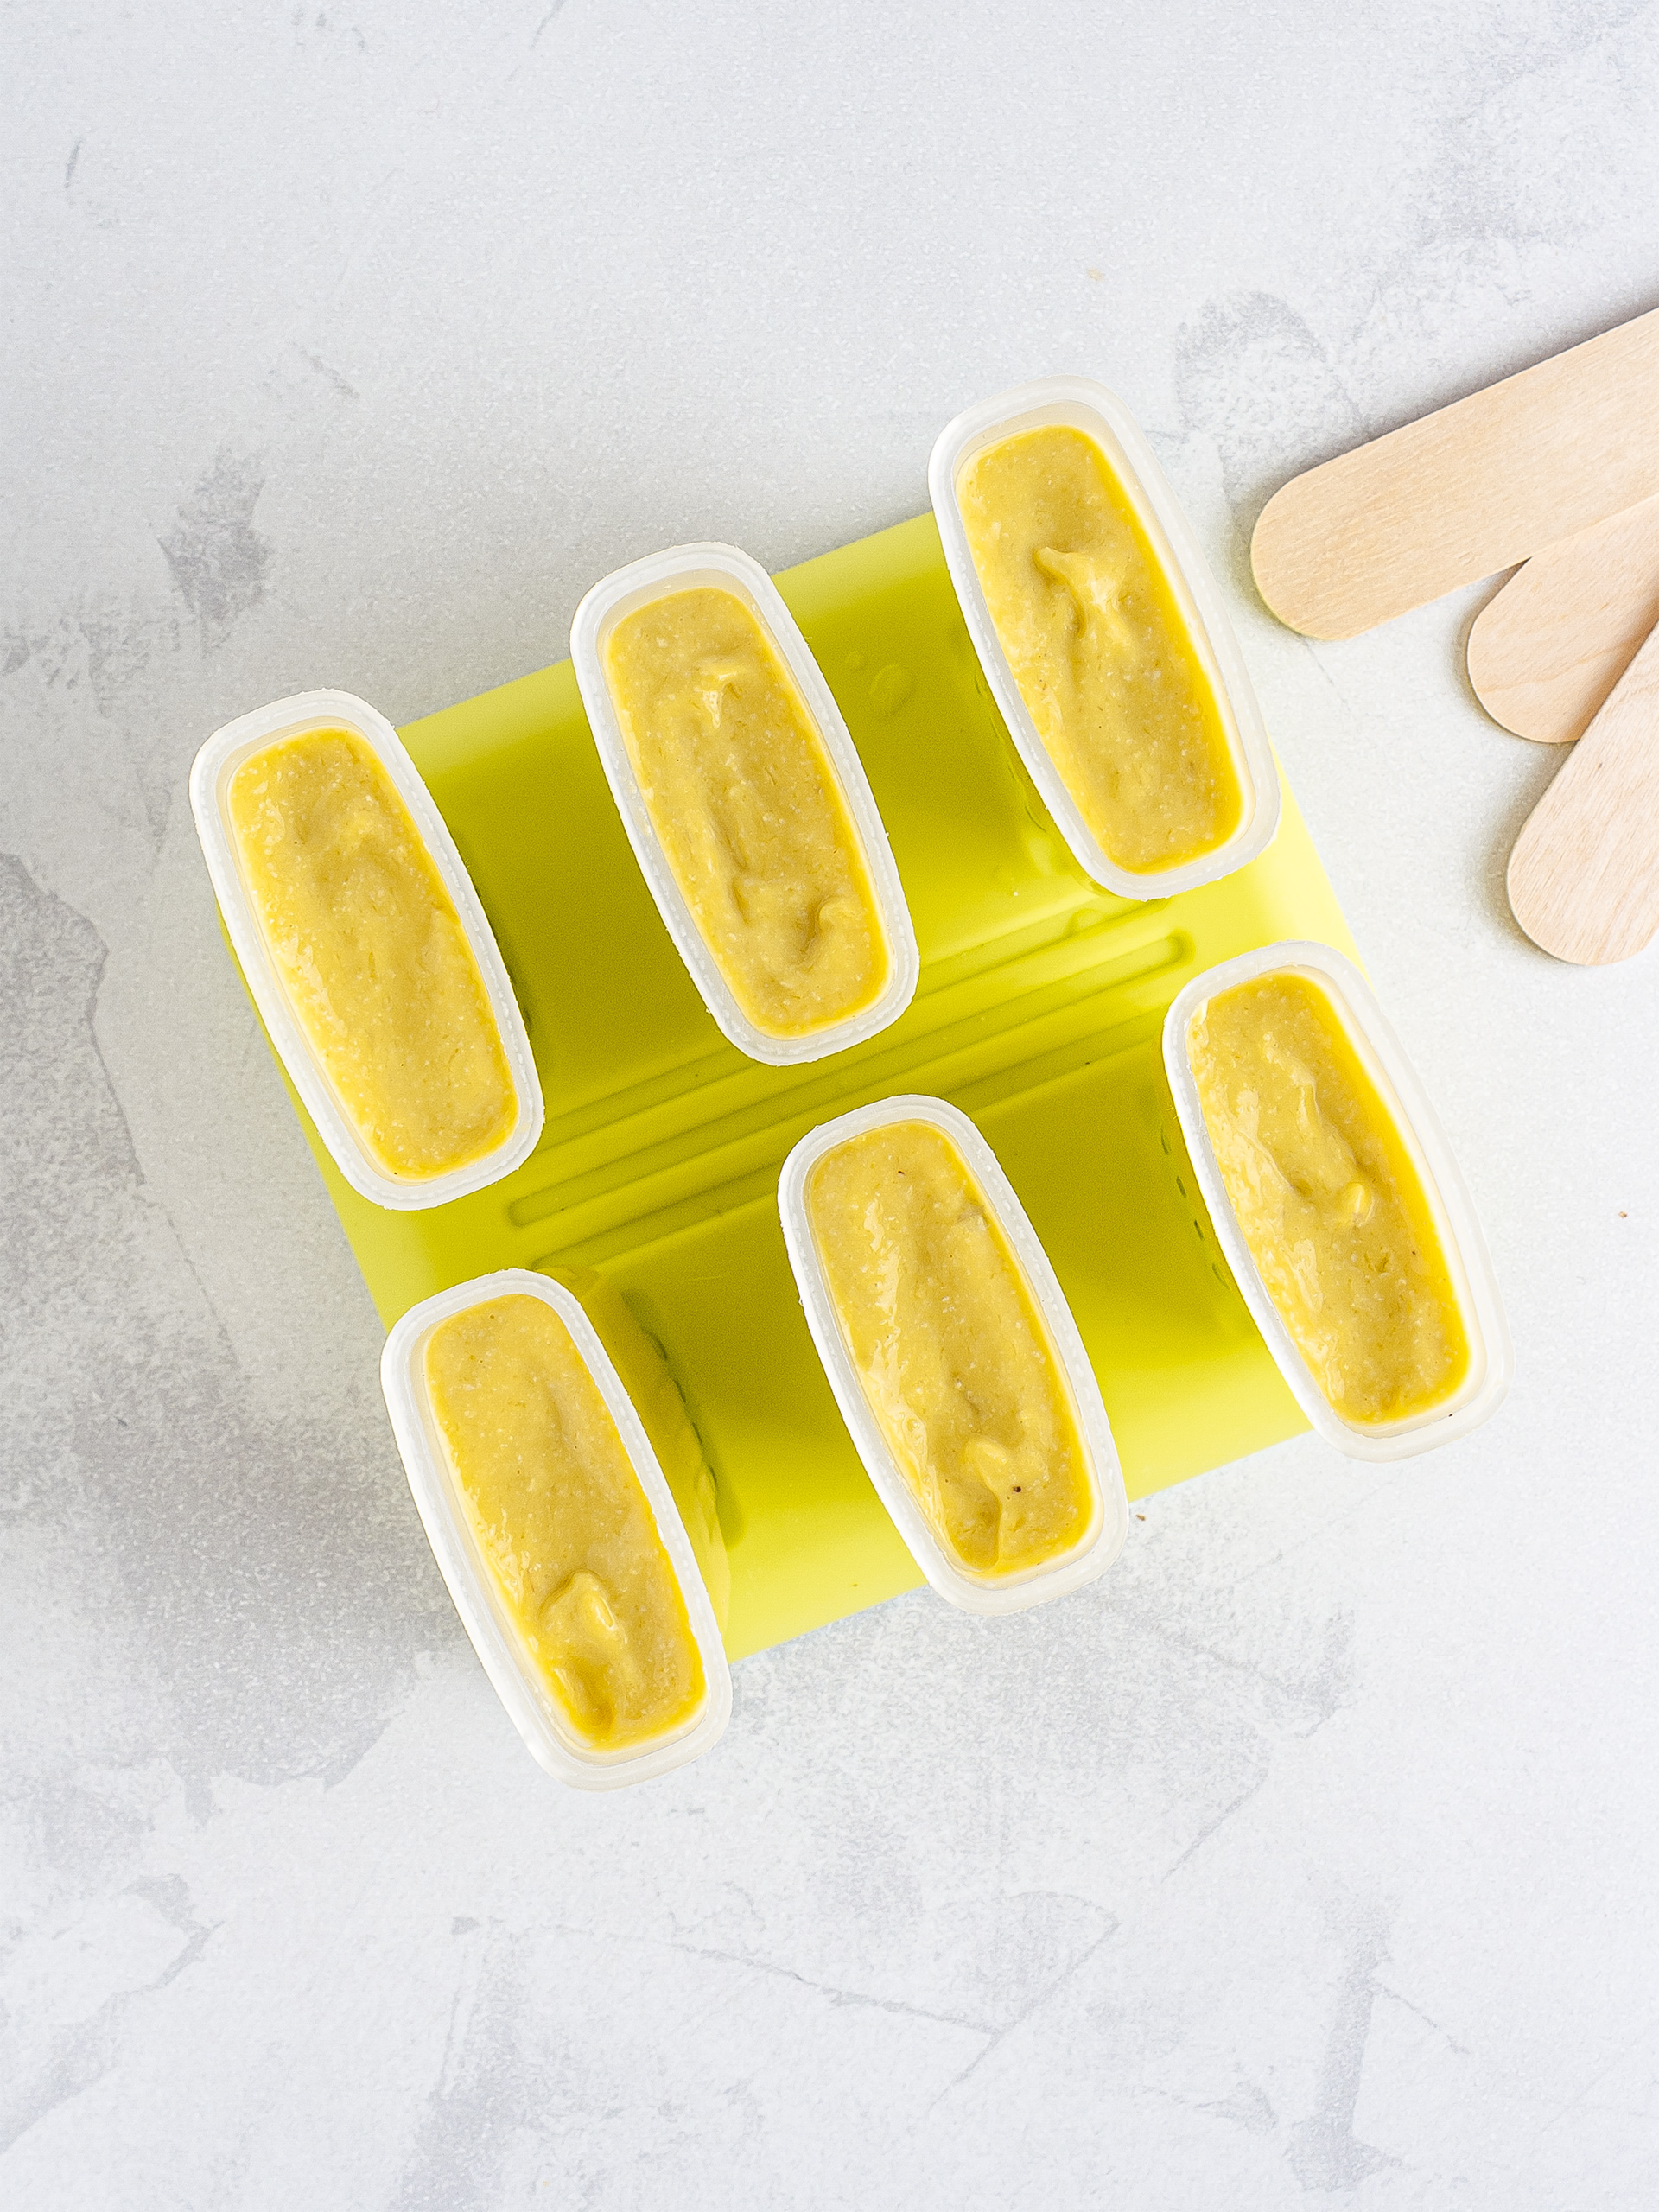 Mango malai kulfi in ice lolly moulds